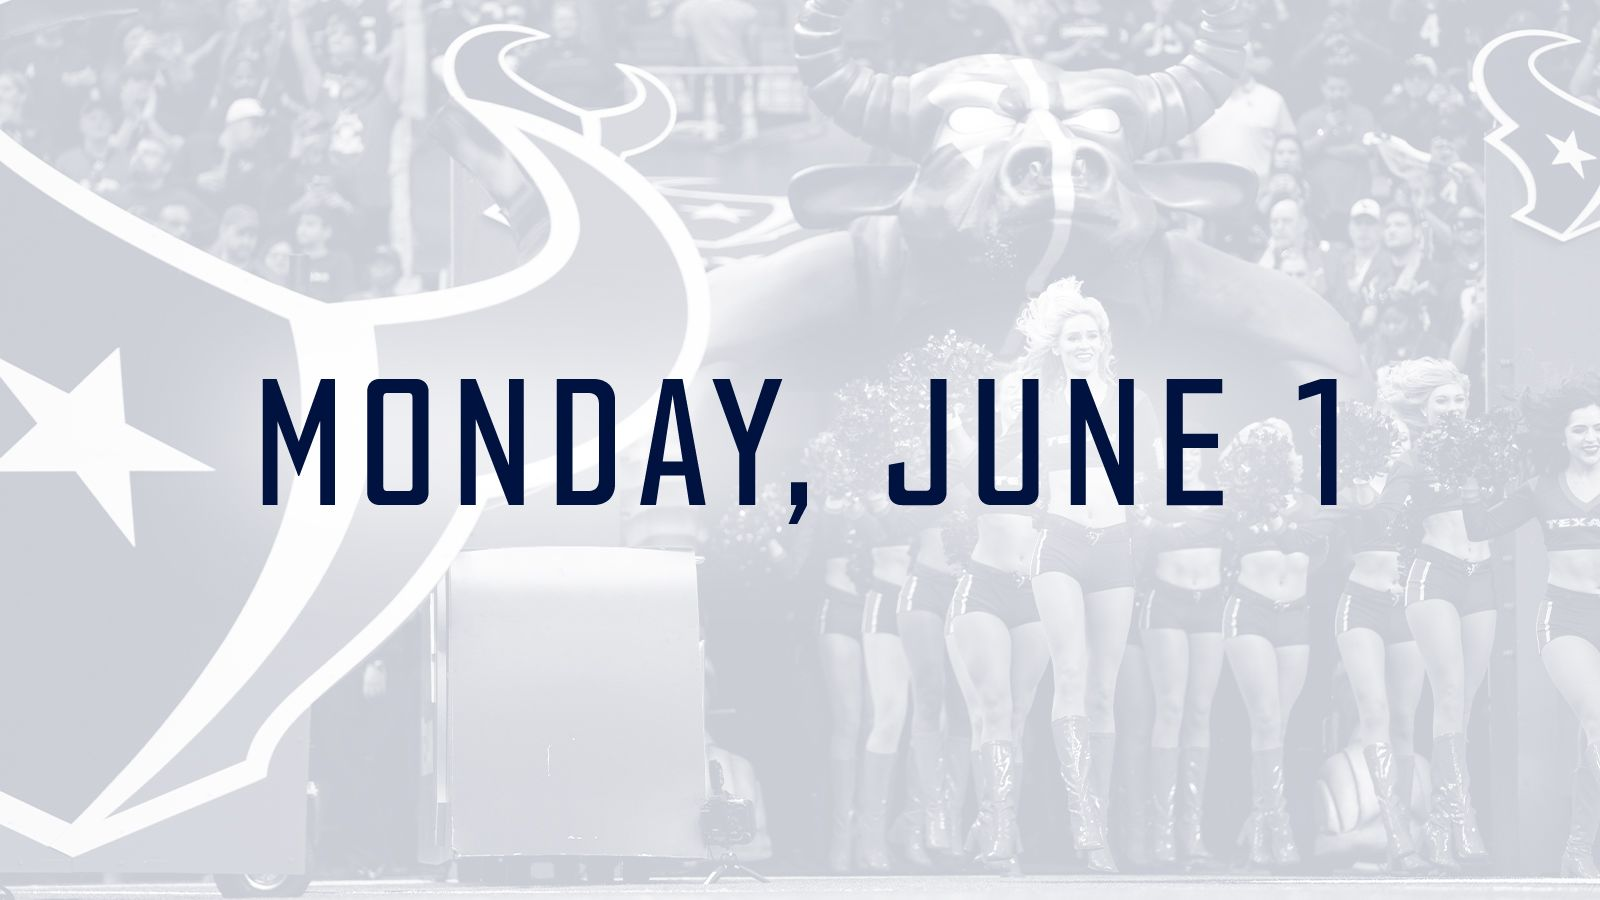 Monday, June 1st